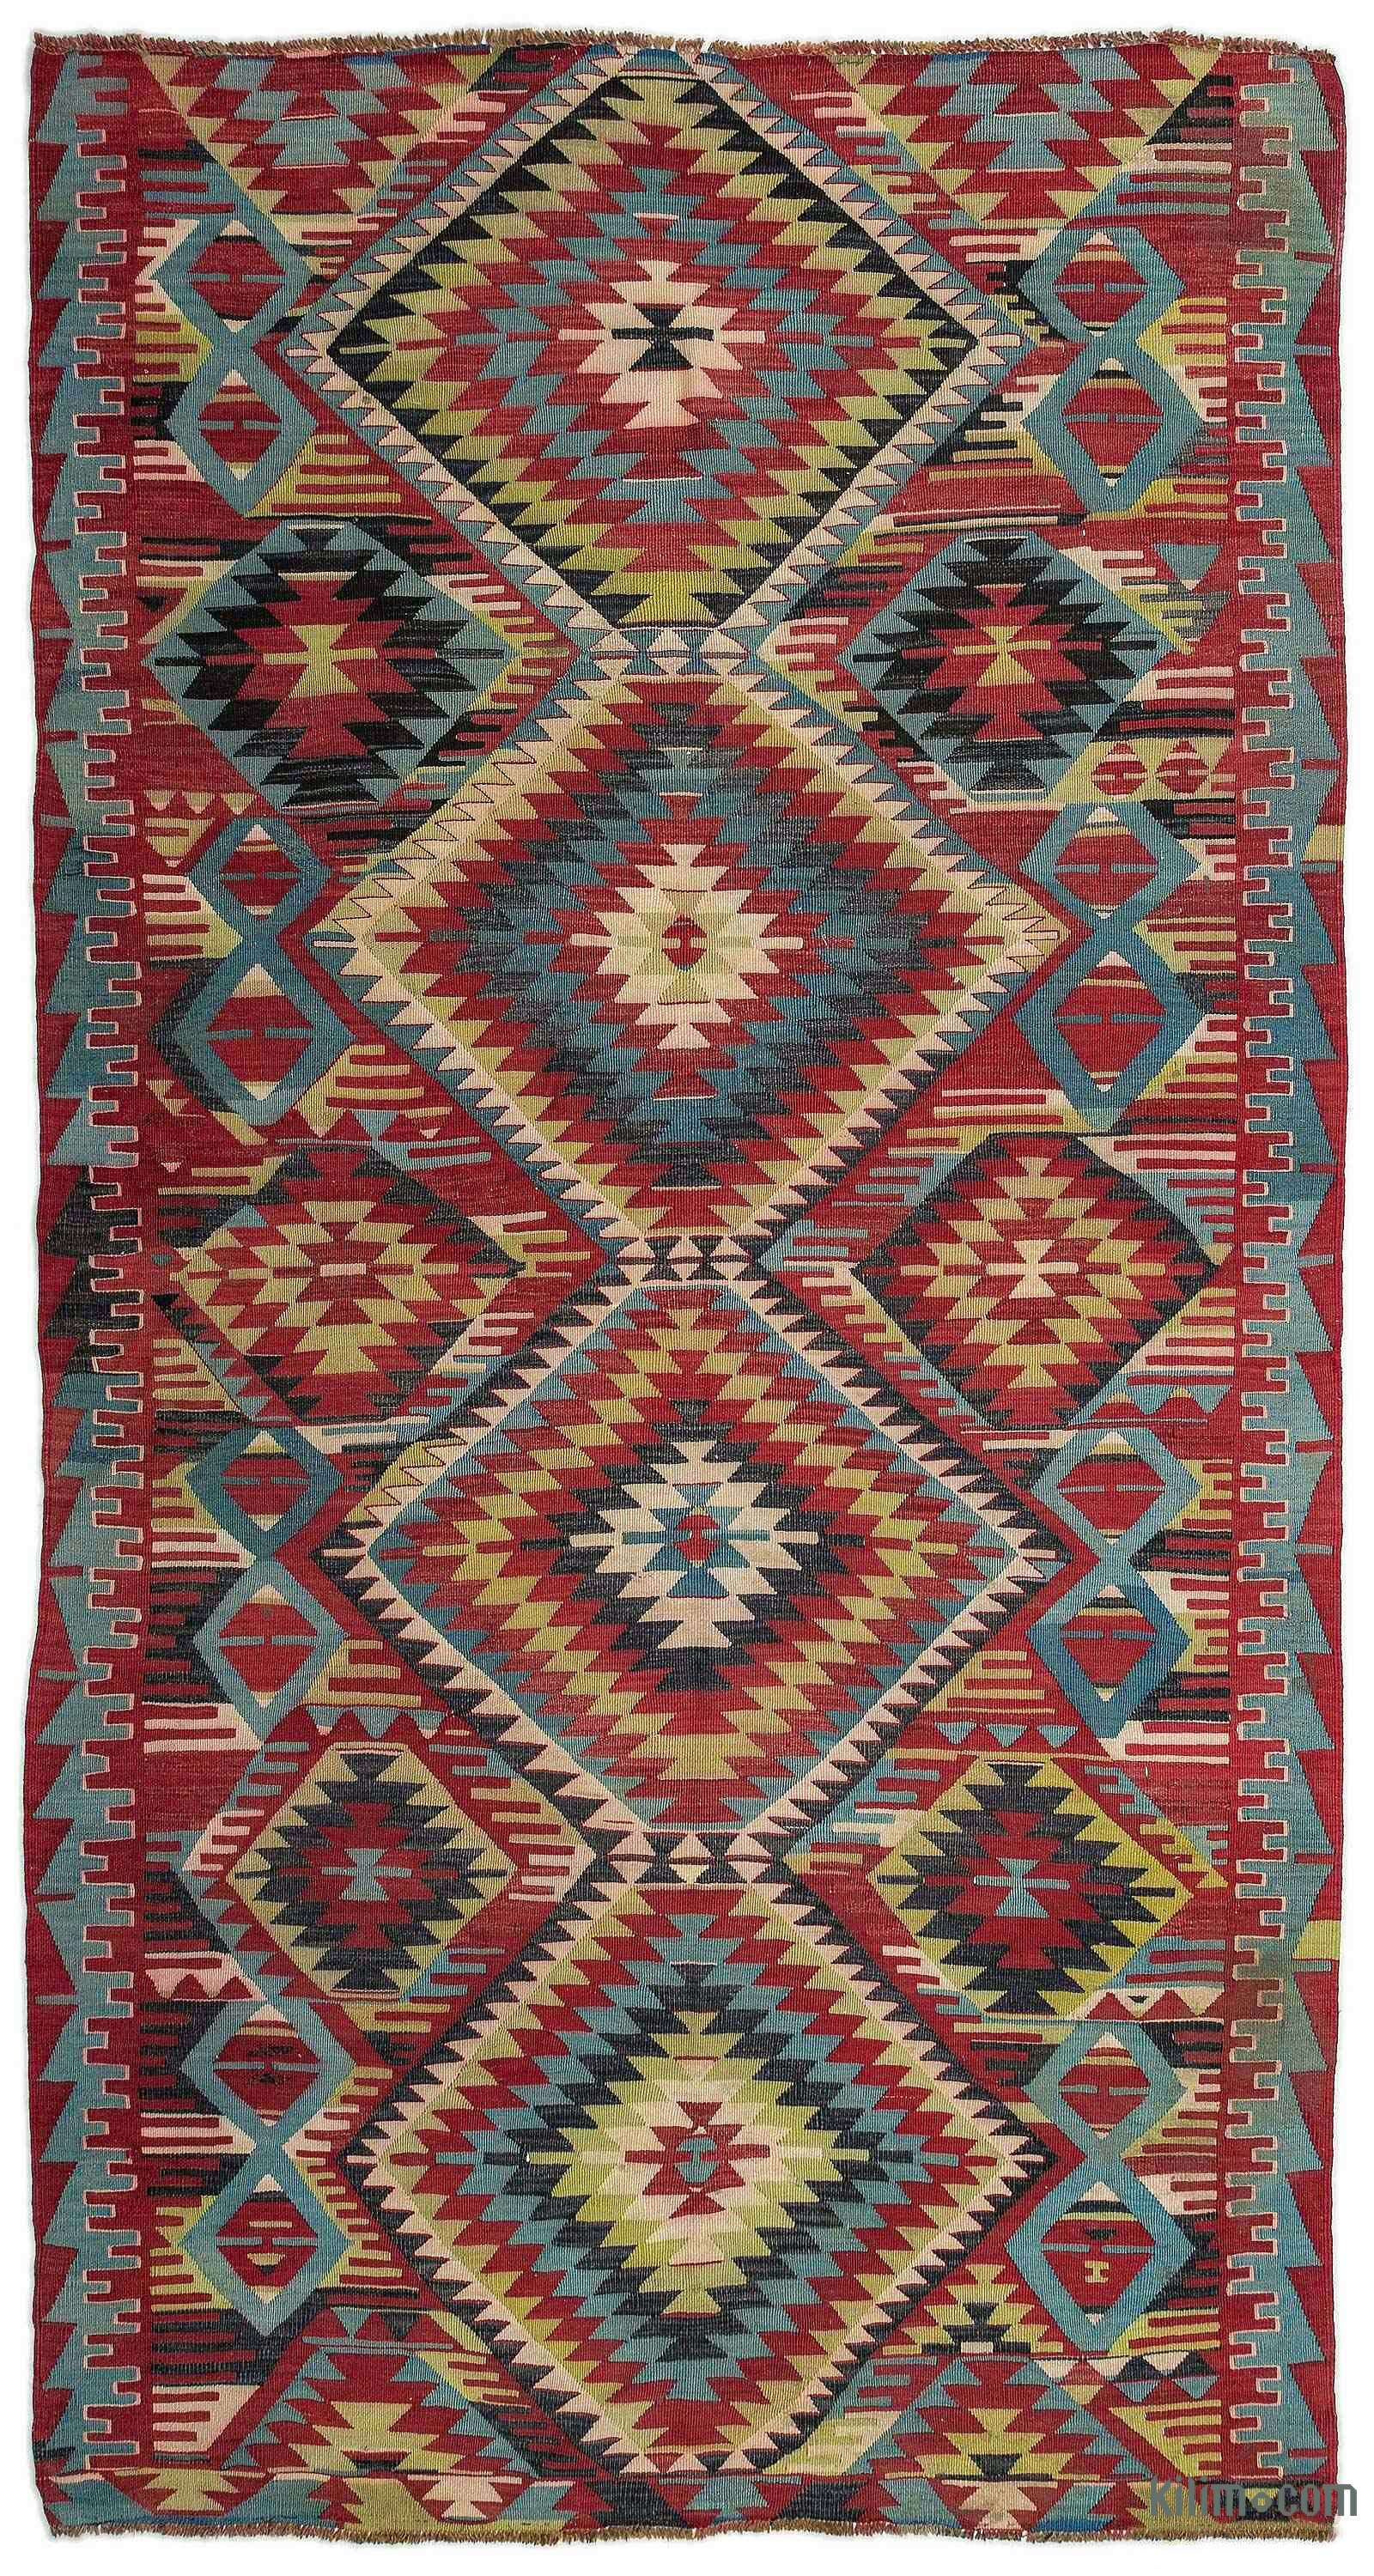 k0015607 red turkish vintage kilim rug. Black Bedroom Furniture Sets. Home Design Ideas